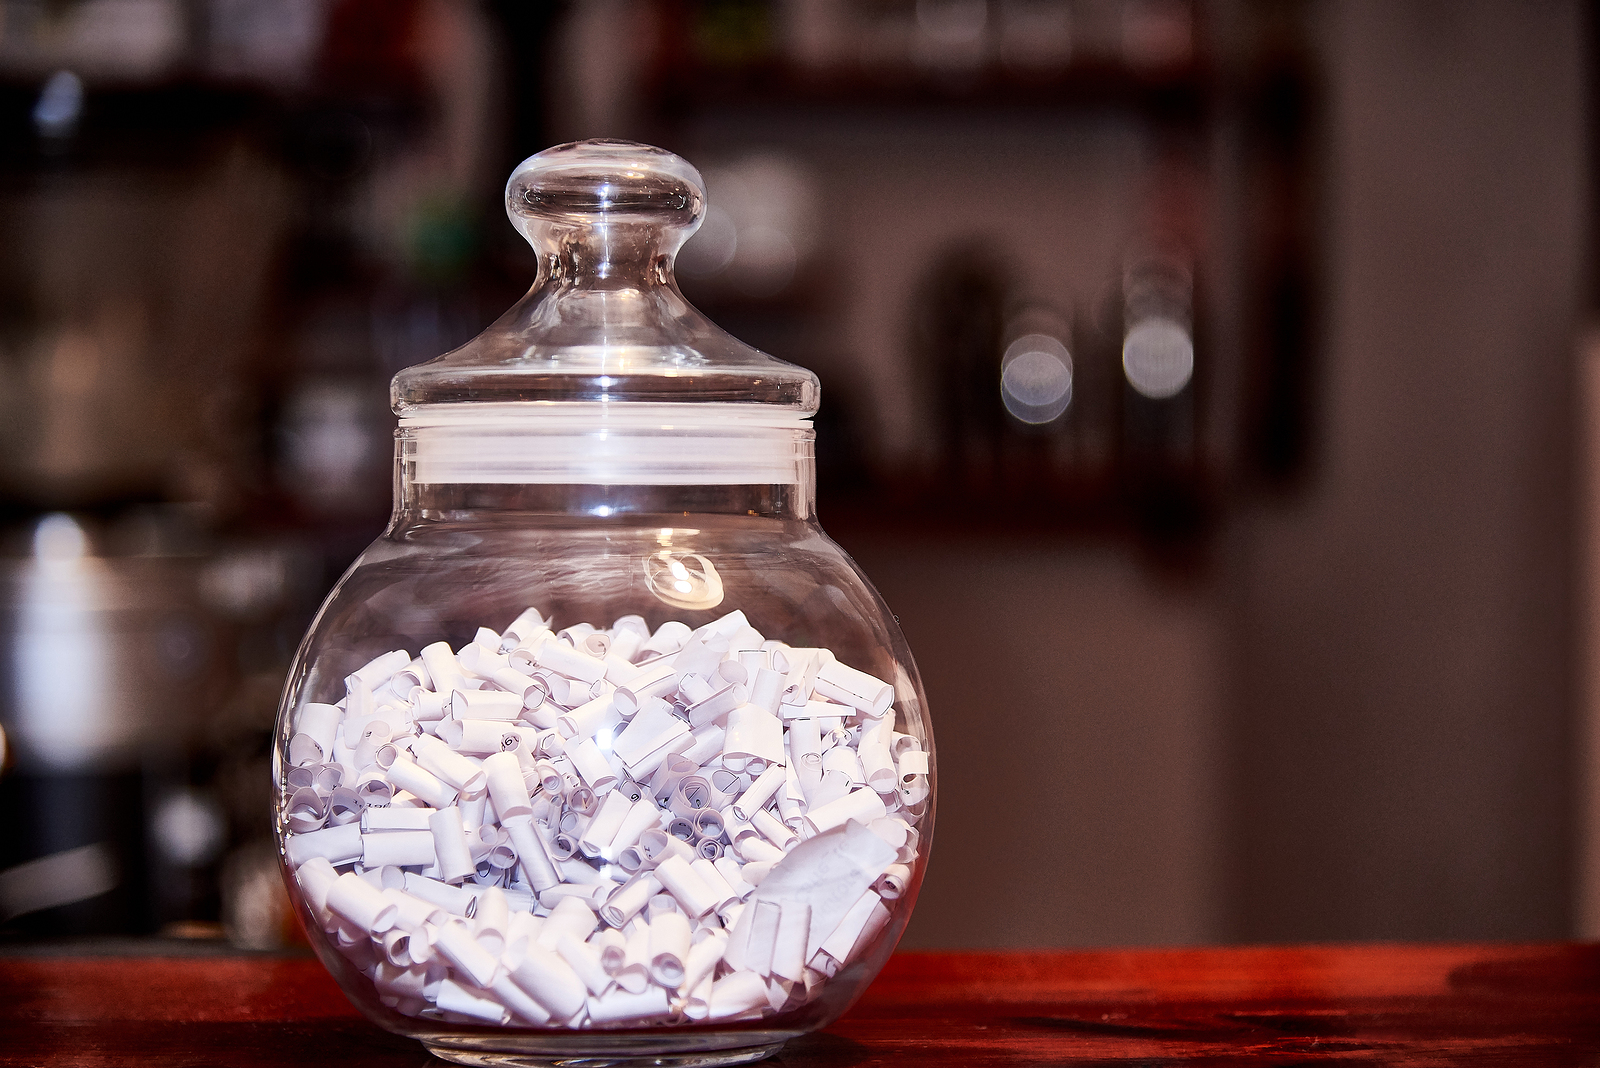 Glass jar with predictions stands on a wooden table.Copy space